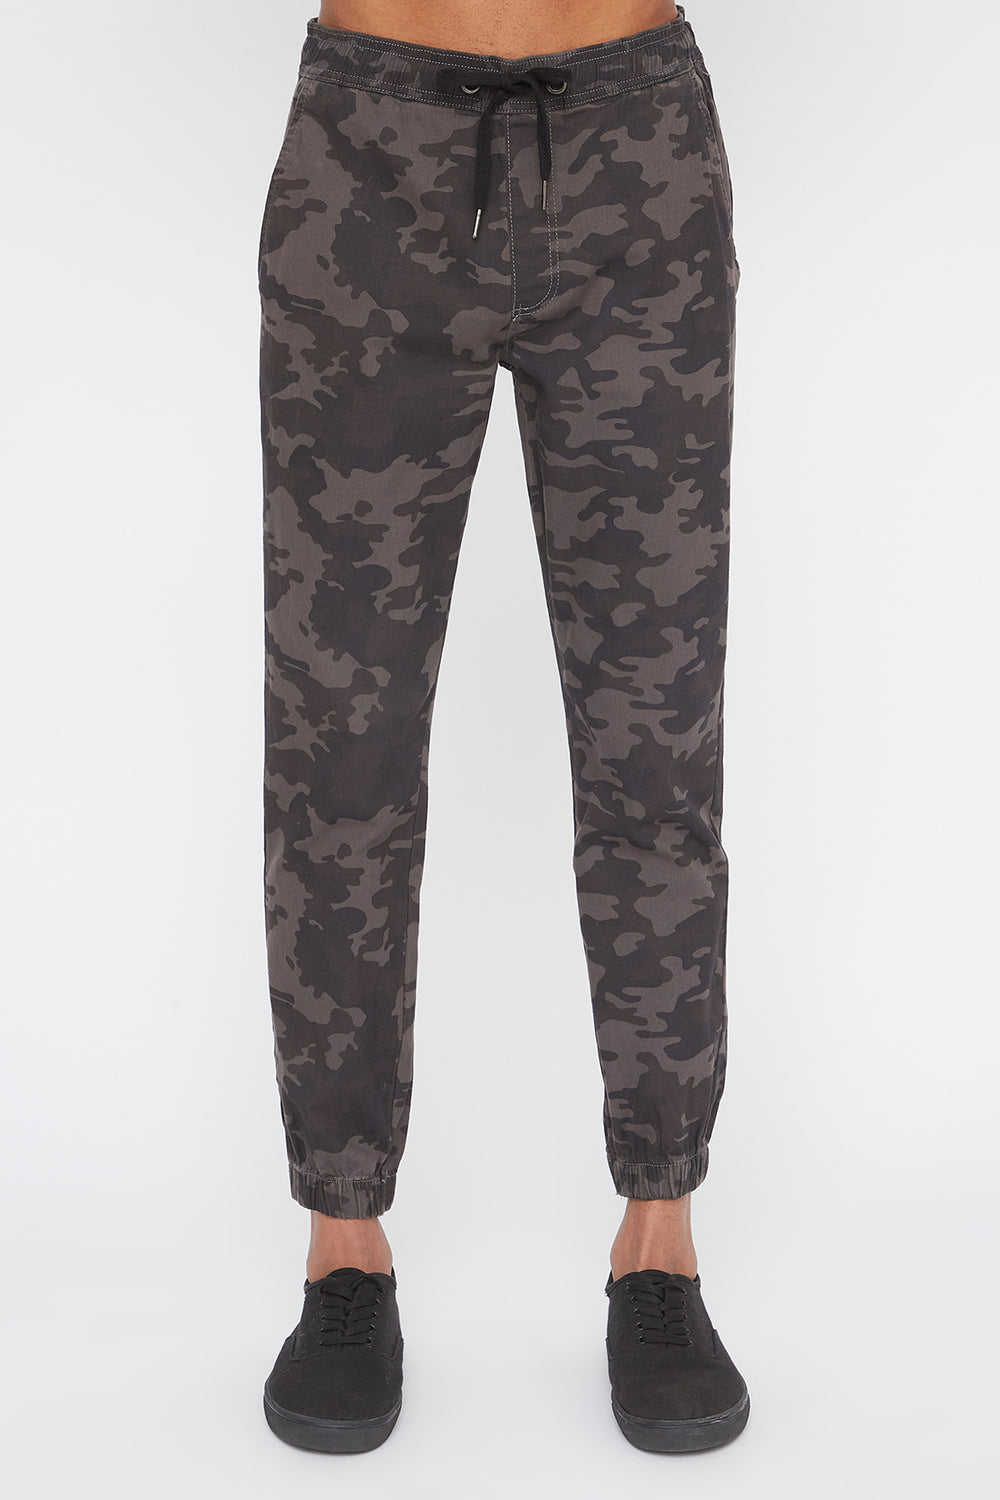 Joggers Camouflage West49 Homme Carreaux